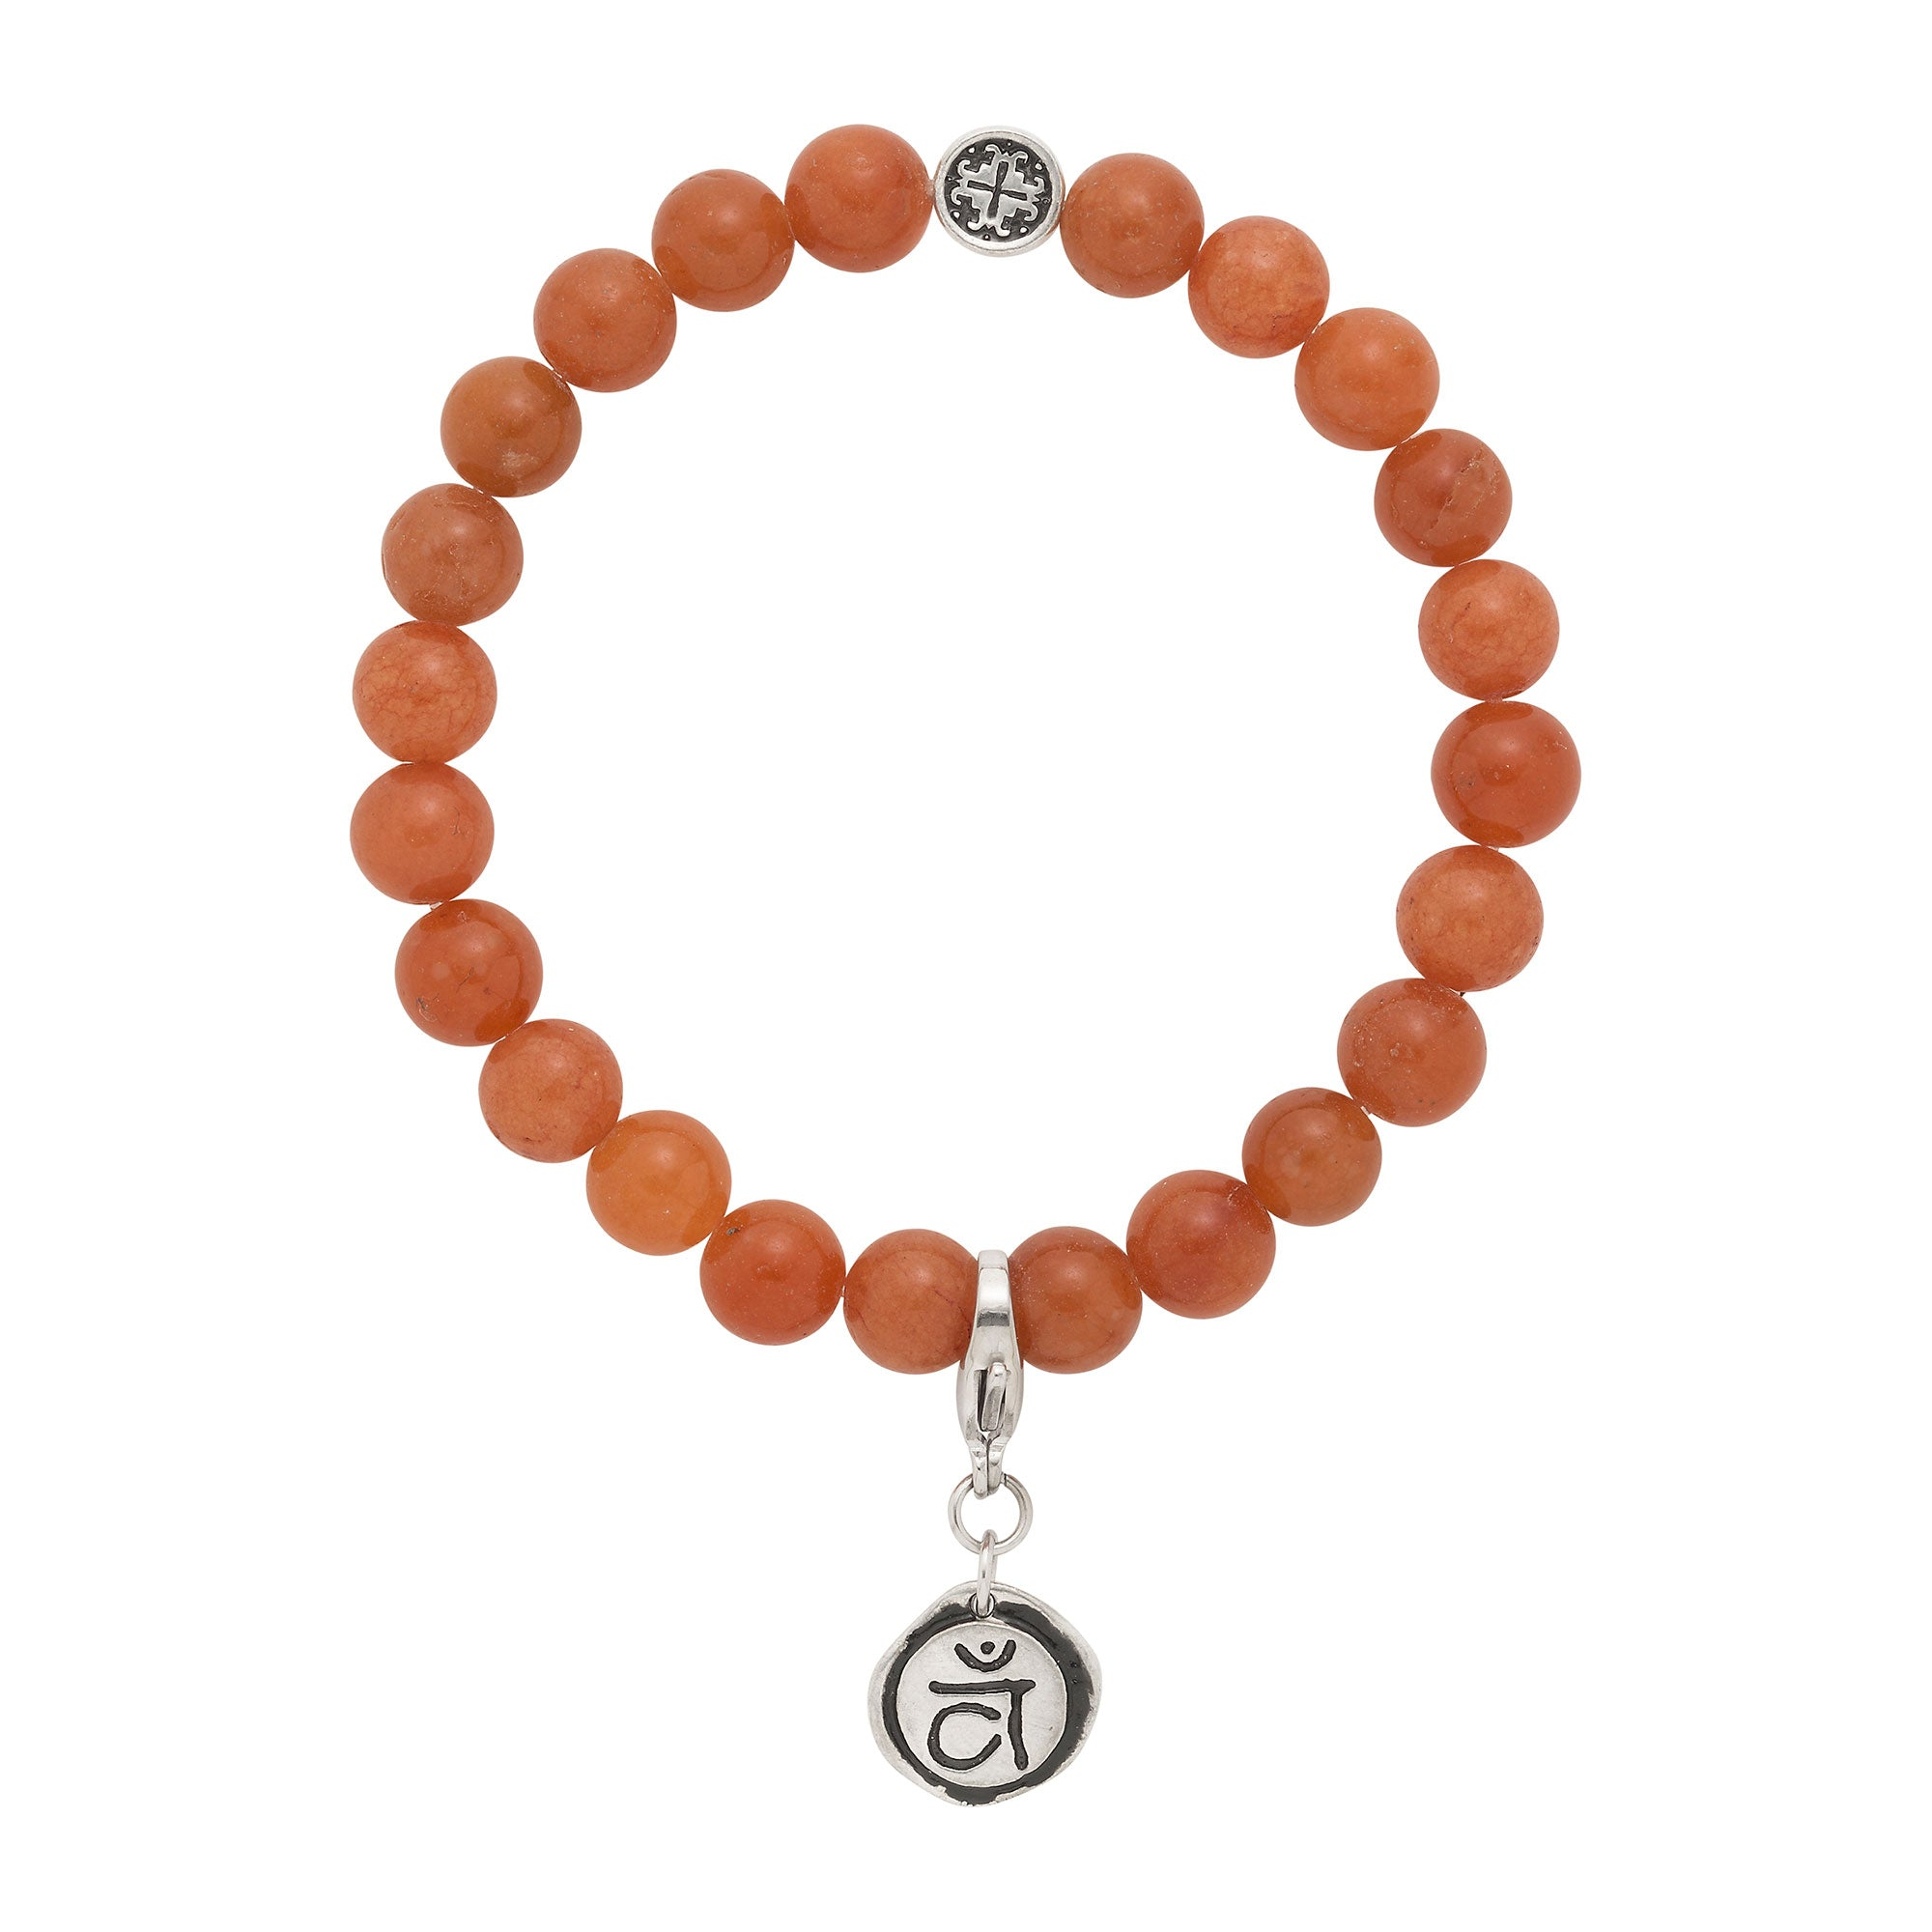 SACRAL CHAKRA: Red Aventurine Unisex Stretch Bracelet with Detachable Chakra Charm